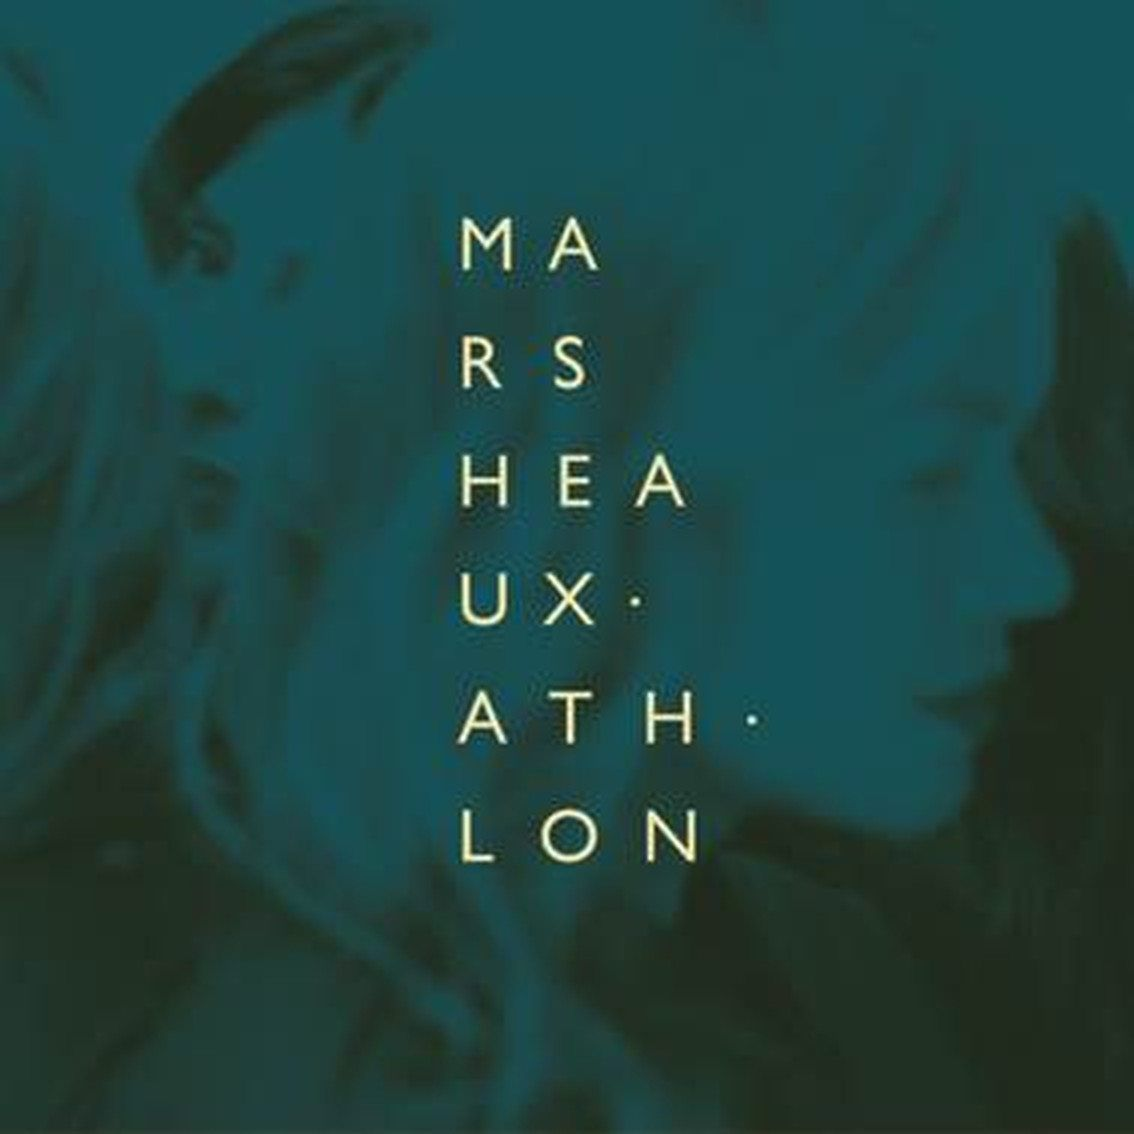 Exclusive: pre-orders new Marsheaux album'Ath.Lon' have started - 3 different formats !